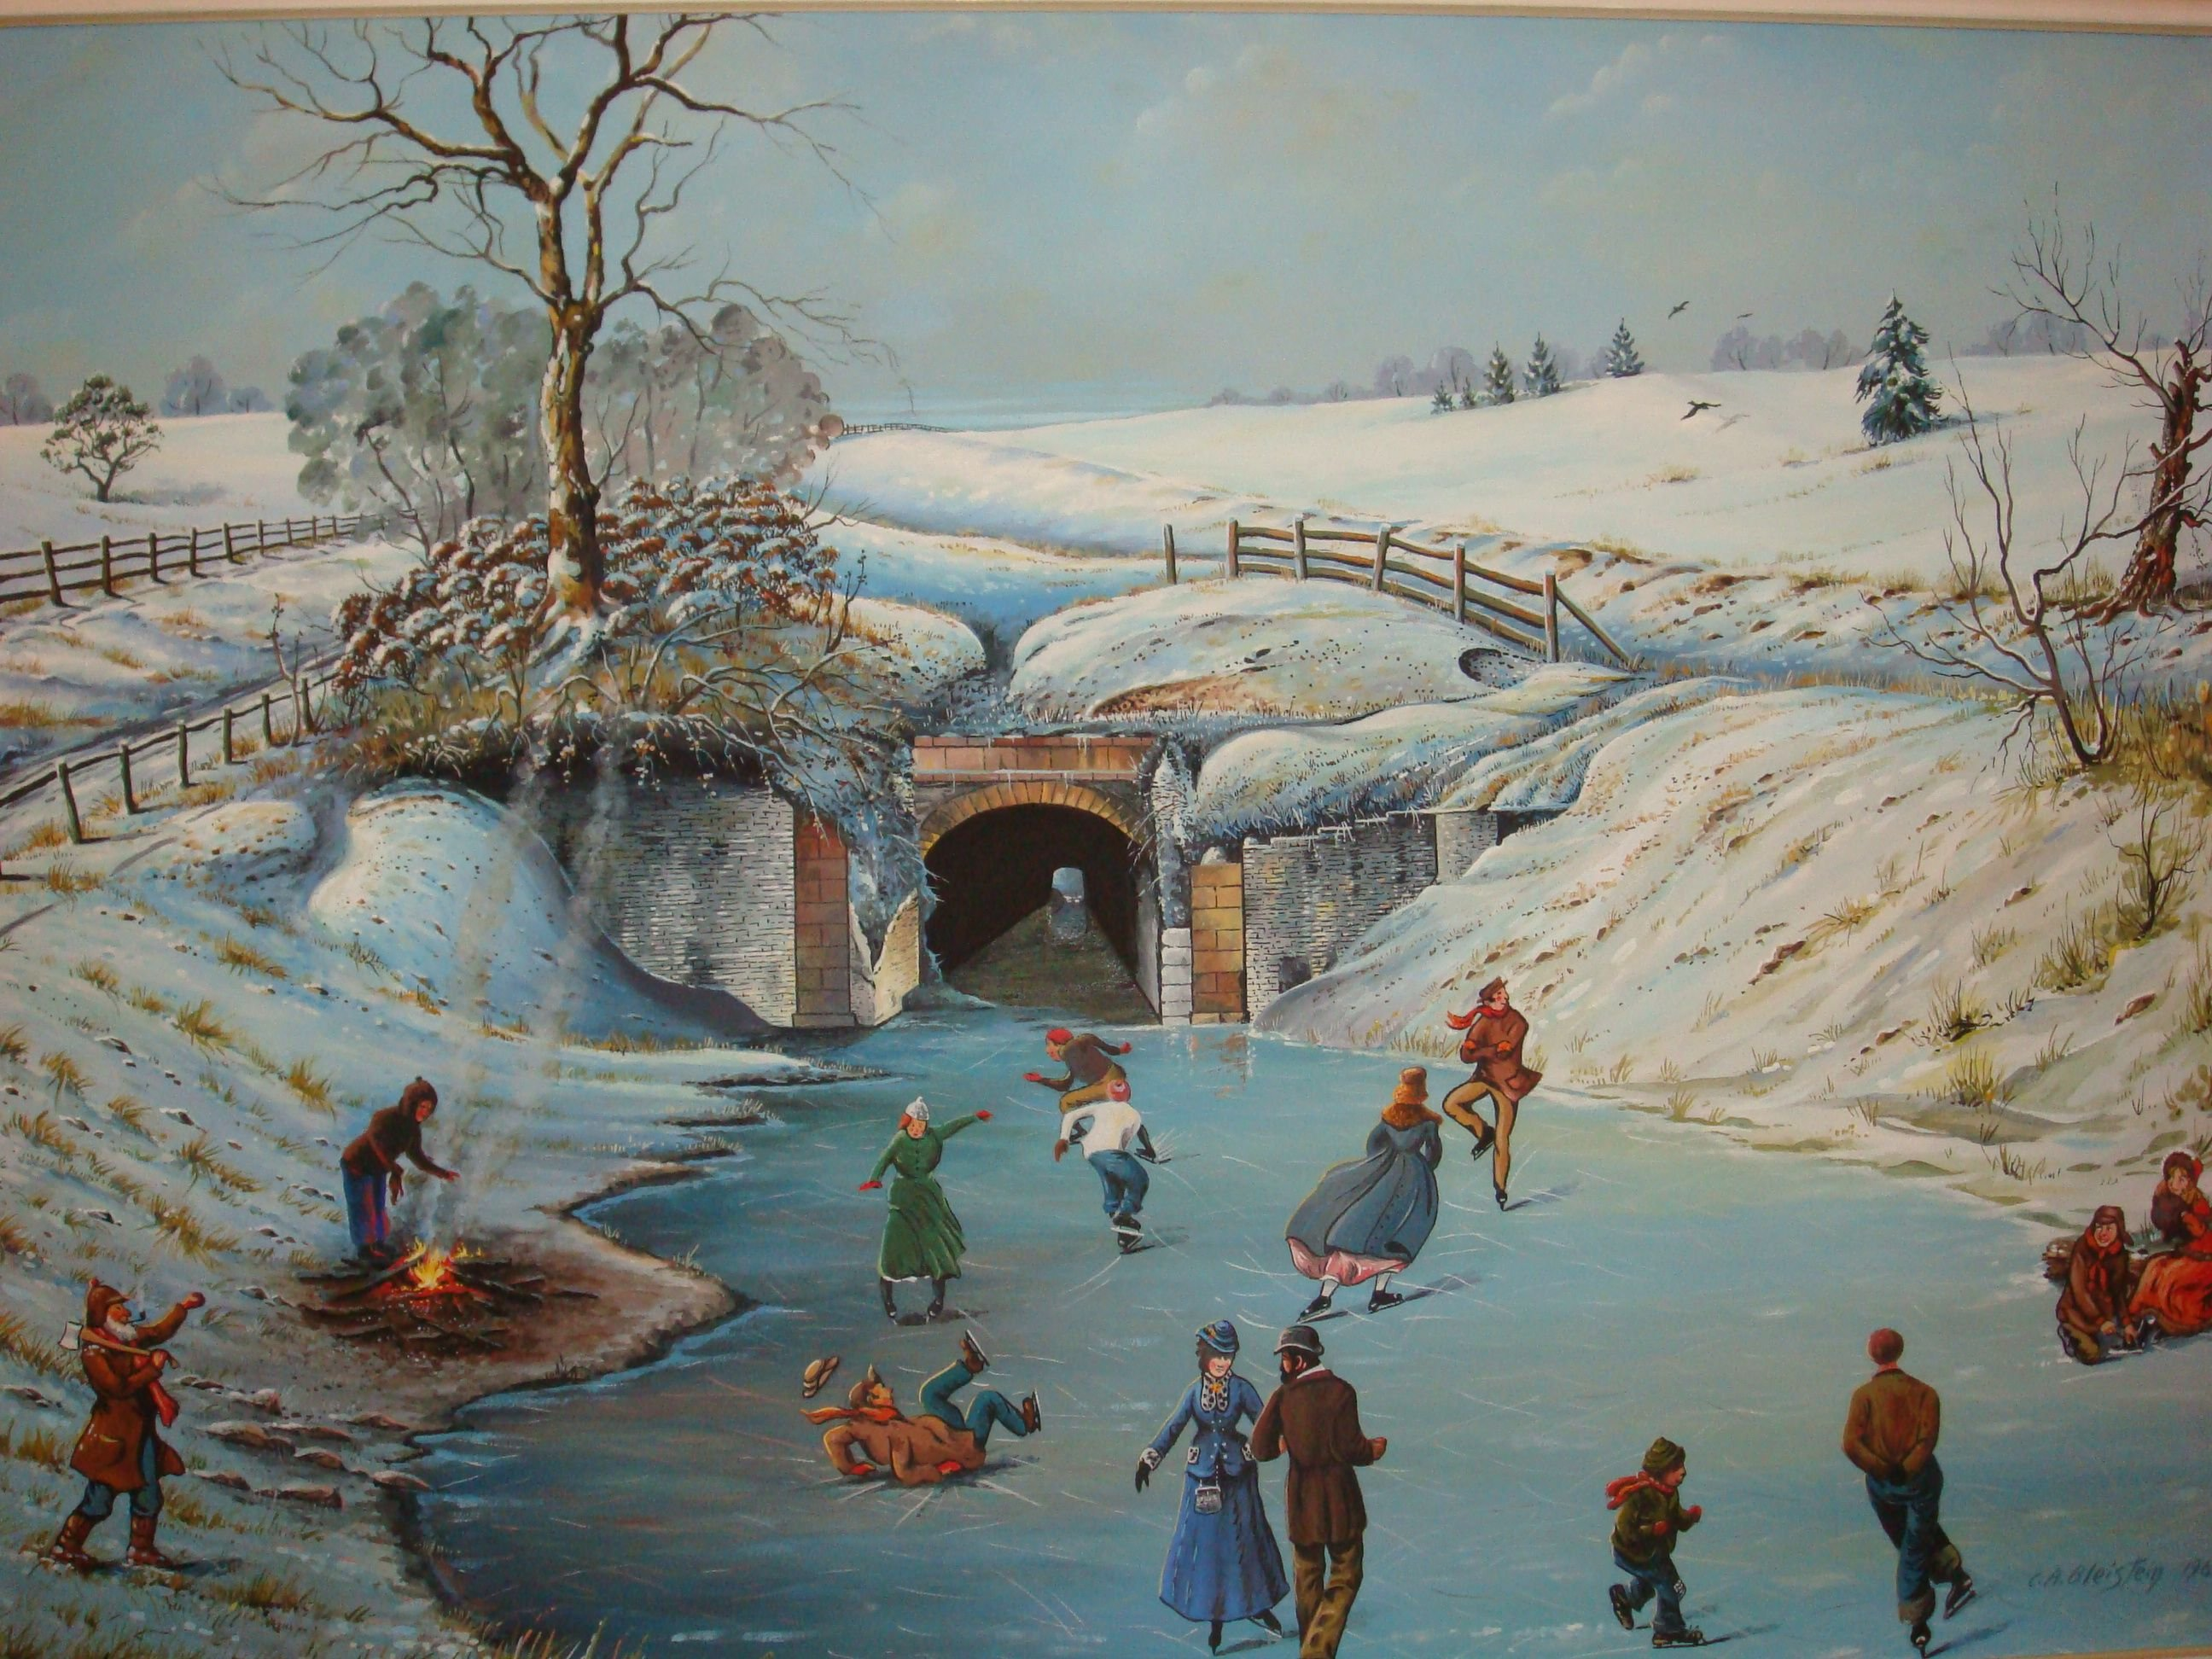 An artist's rendition of what the canal might have looked like in winter.  Due to the ice, the canals were not used in winter.